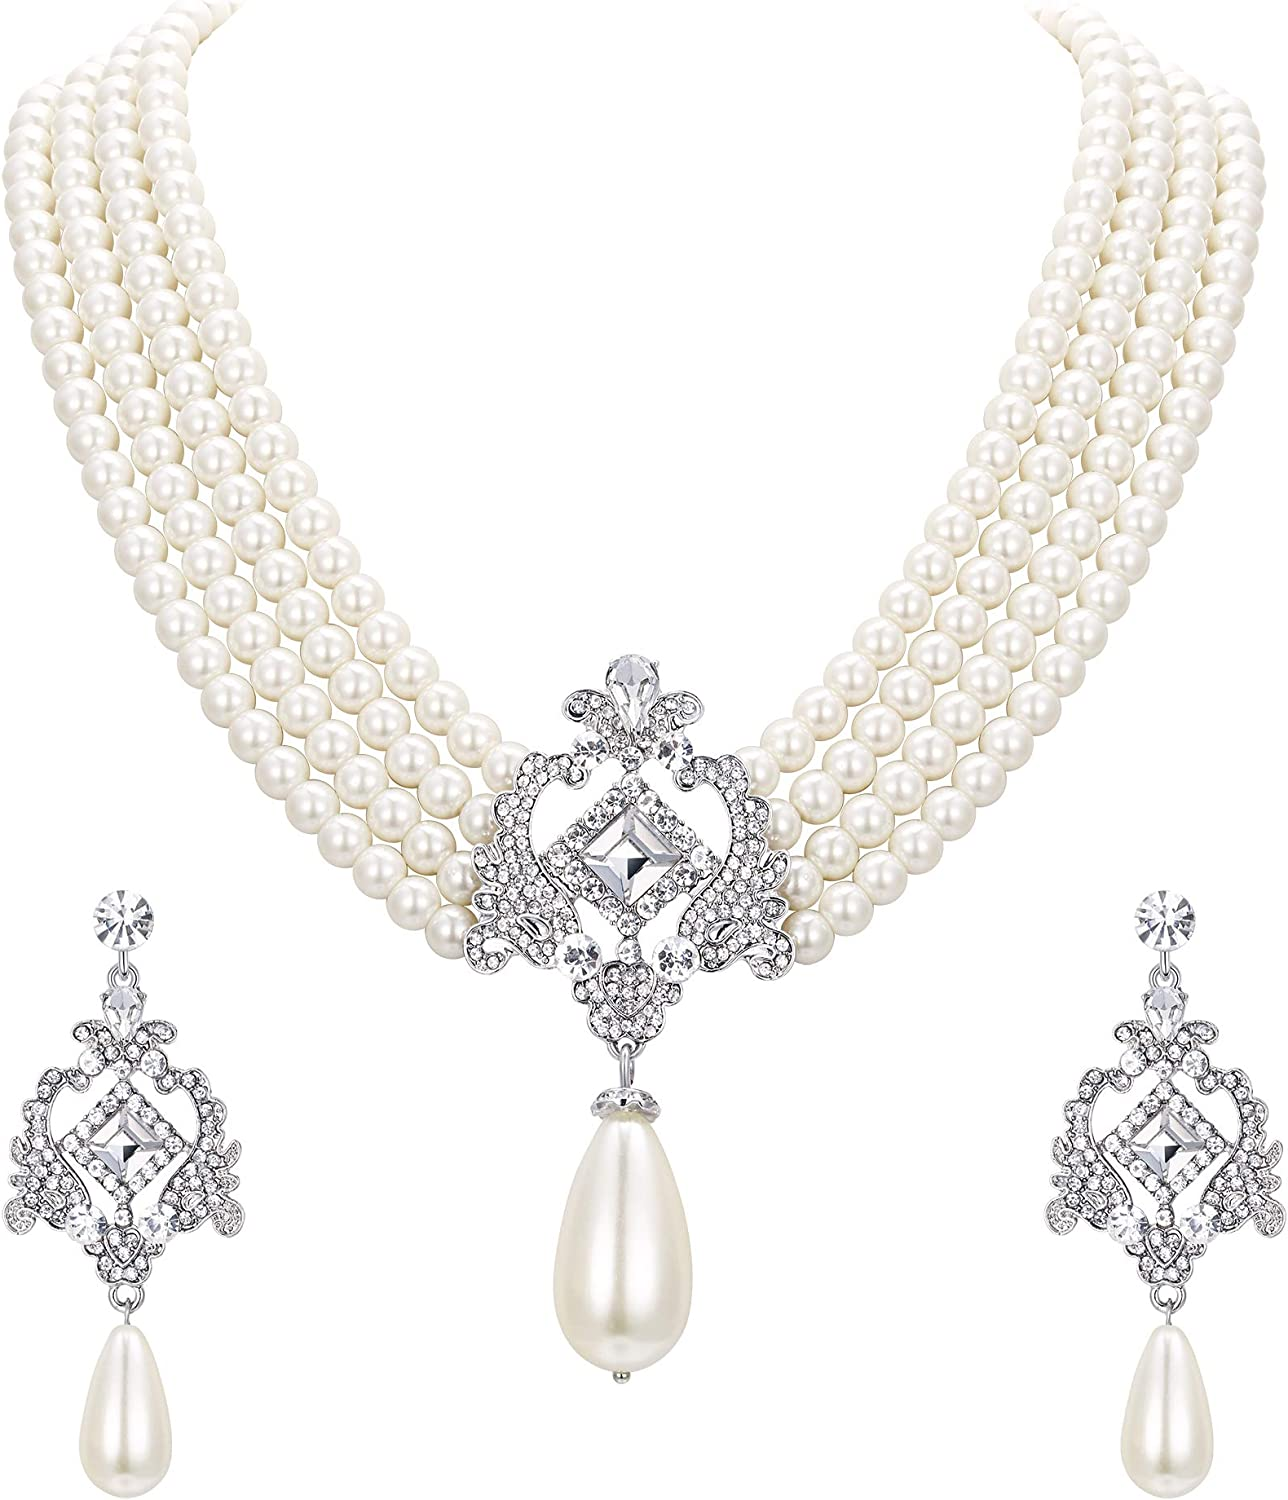 EVER FAITH Crystal 4 Layers Simulated Pearl Elegant Vintage Inspired Chandelier Necklace Earrings Set